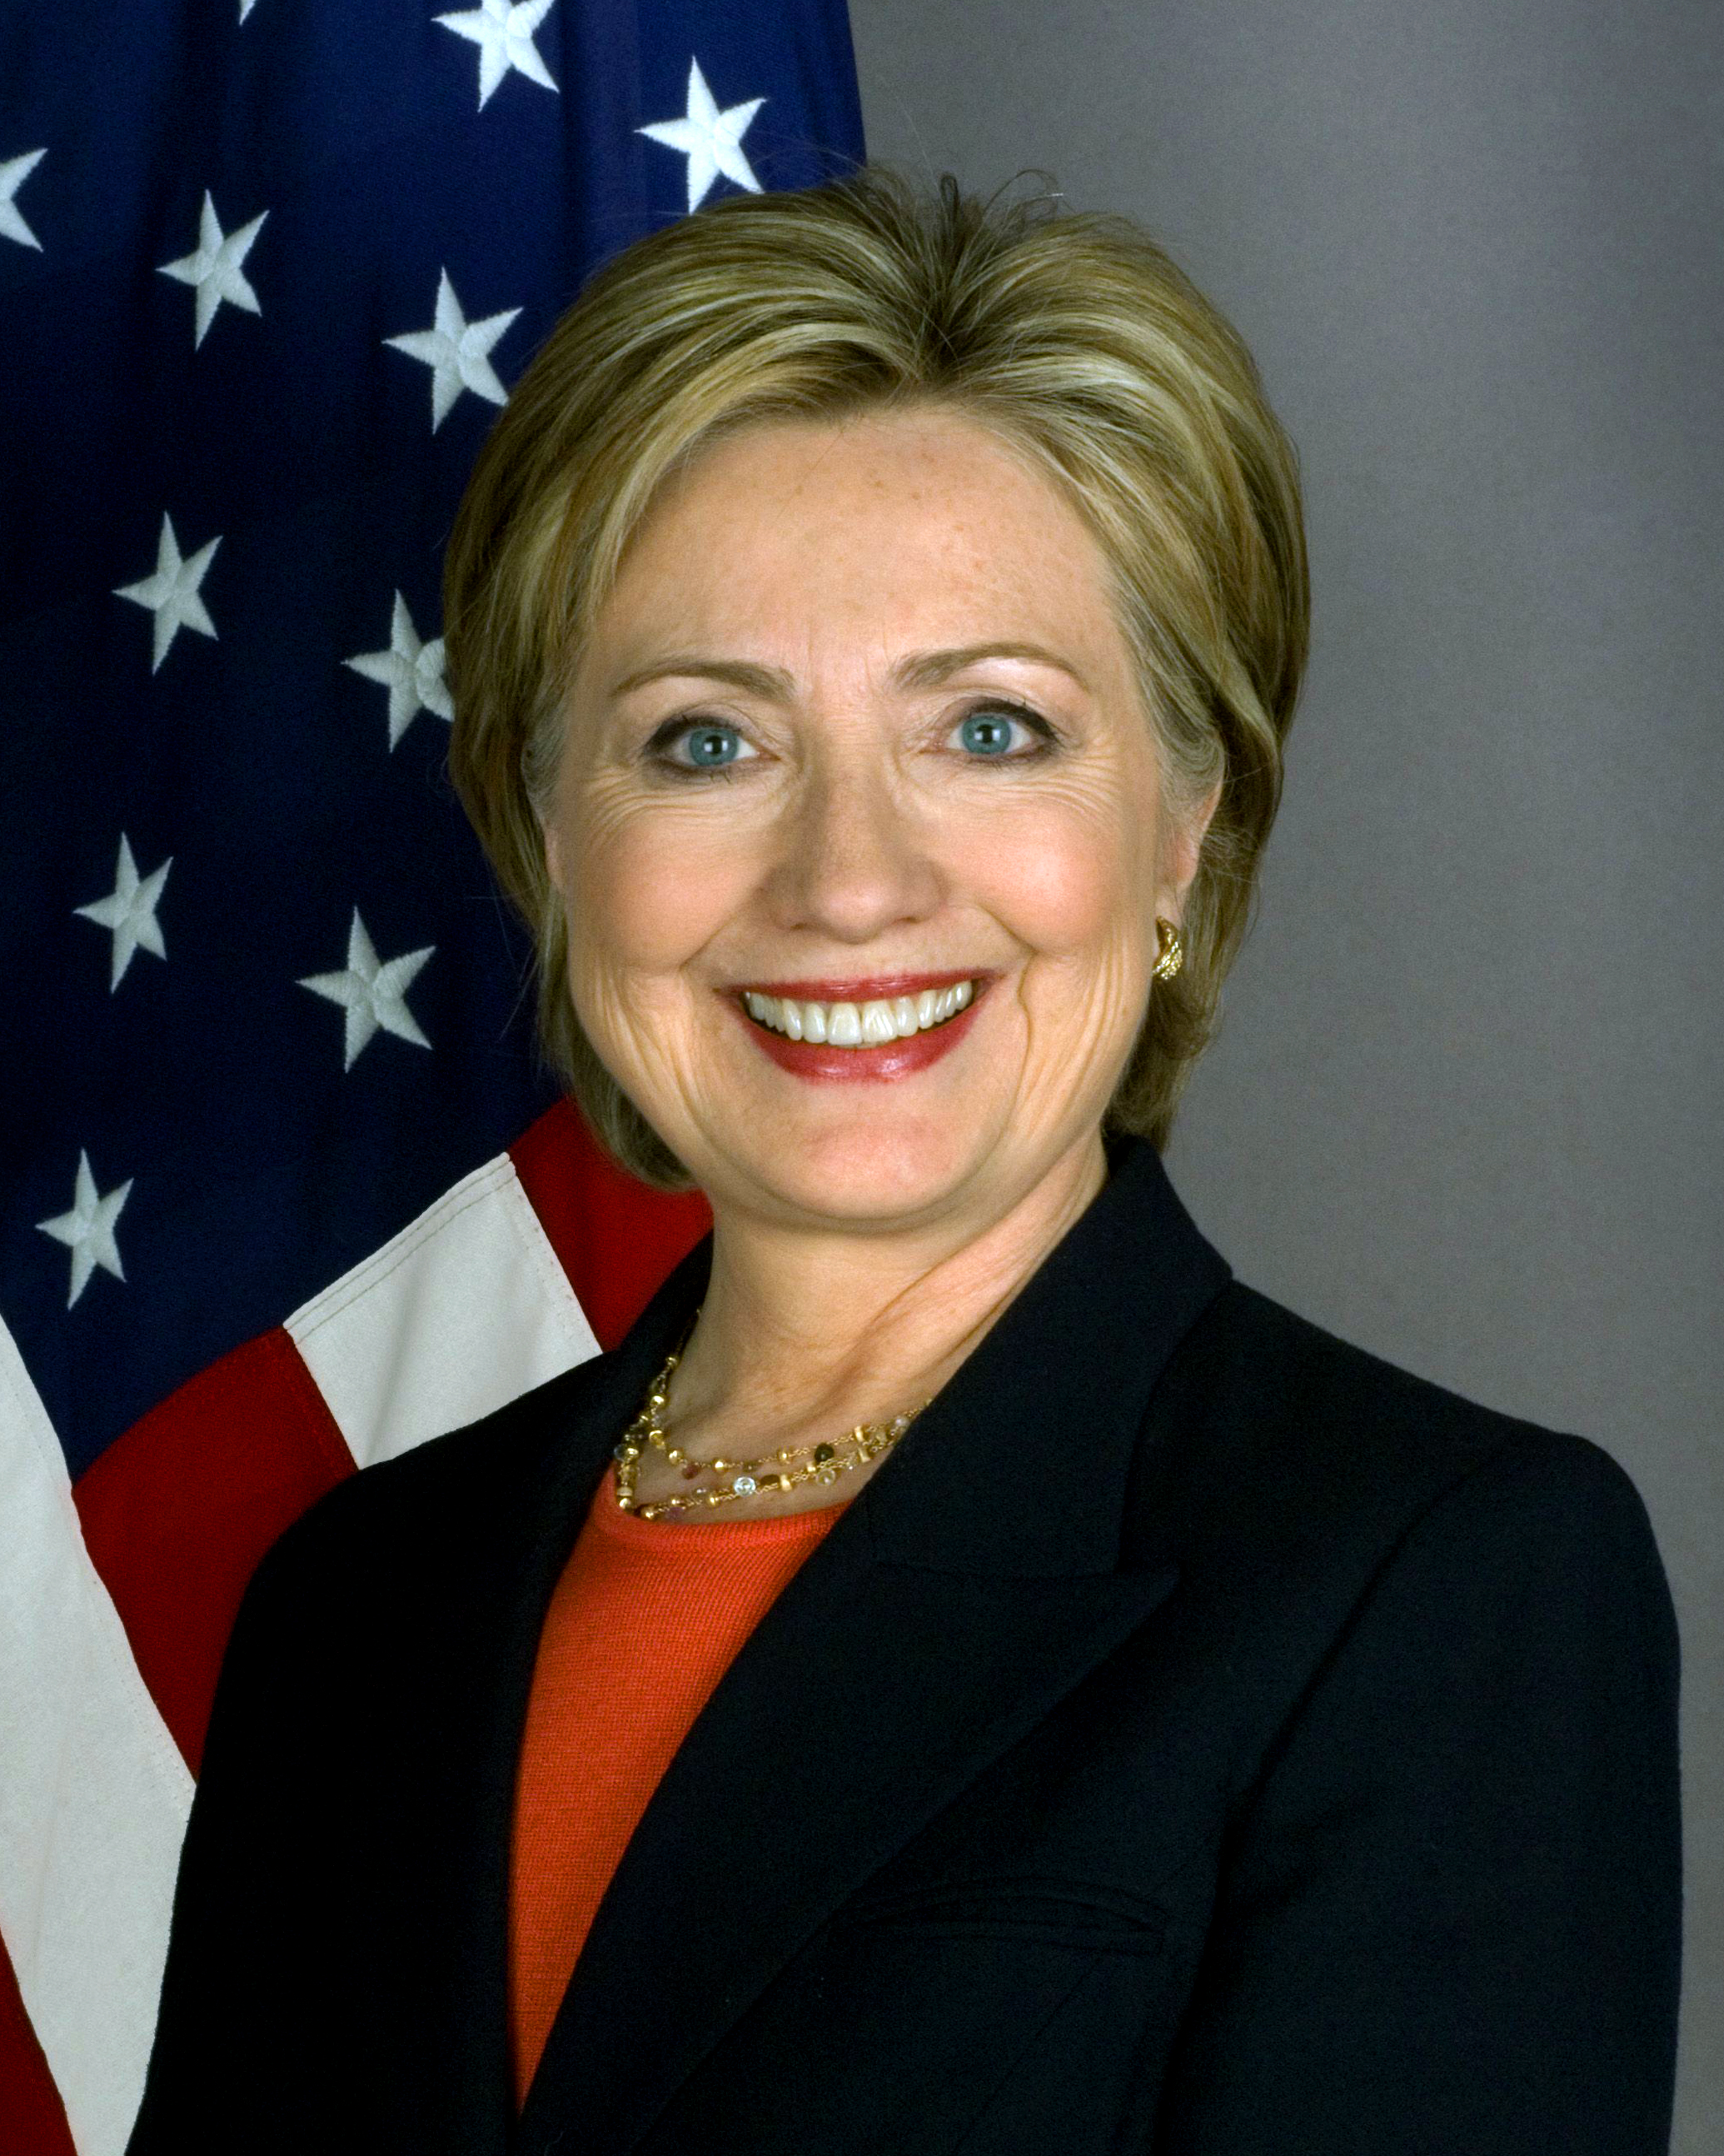 File:Hillary Clinton official Secretary of State portrait crop.jpg ...